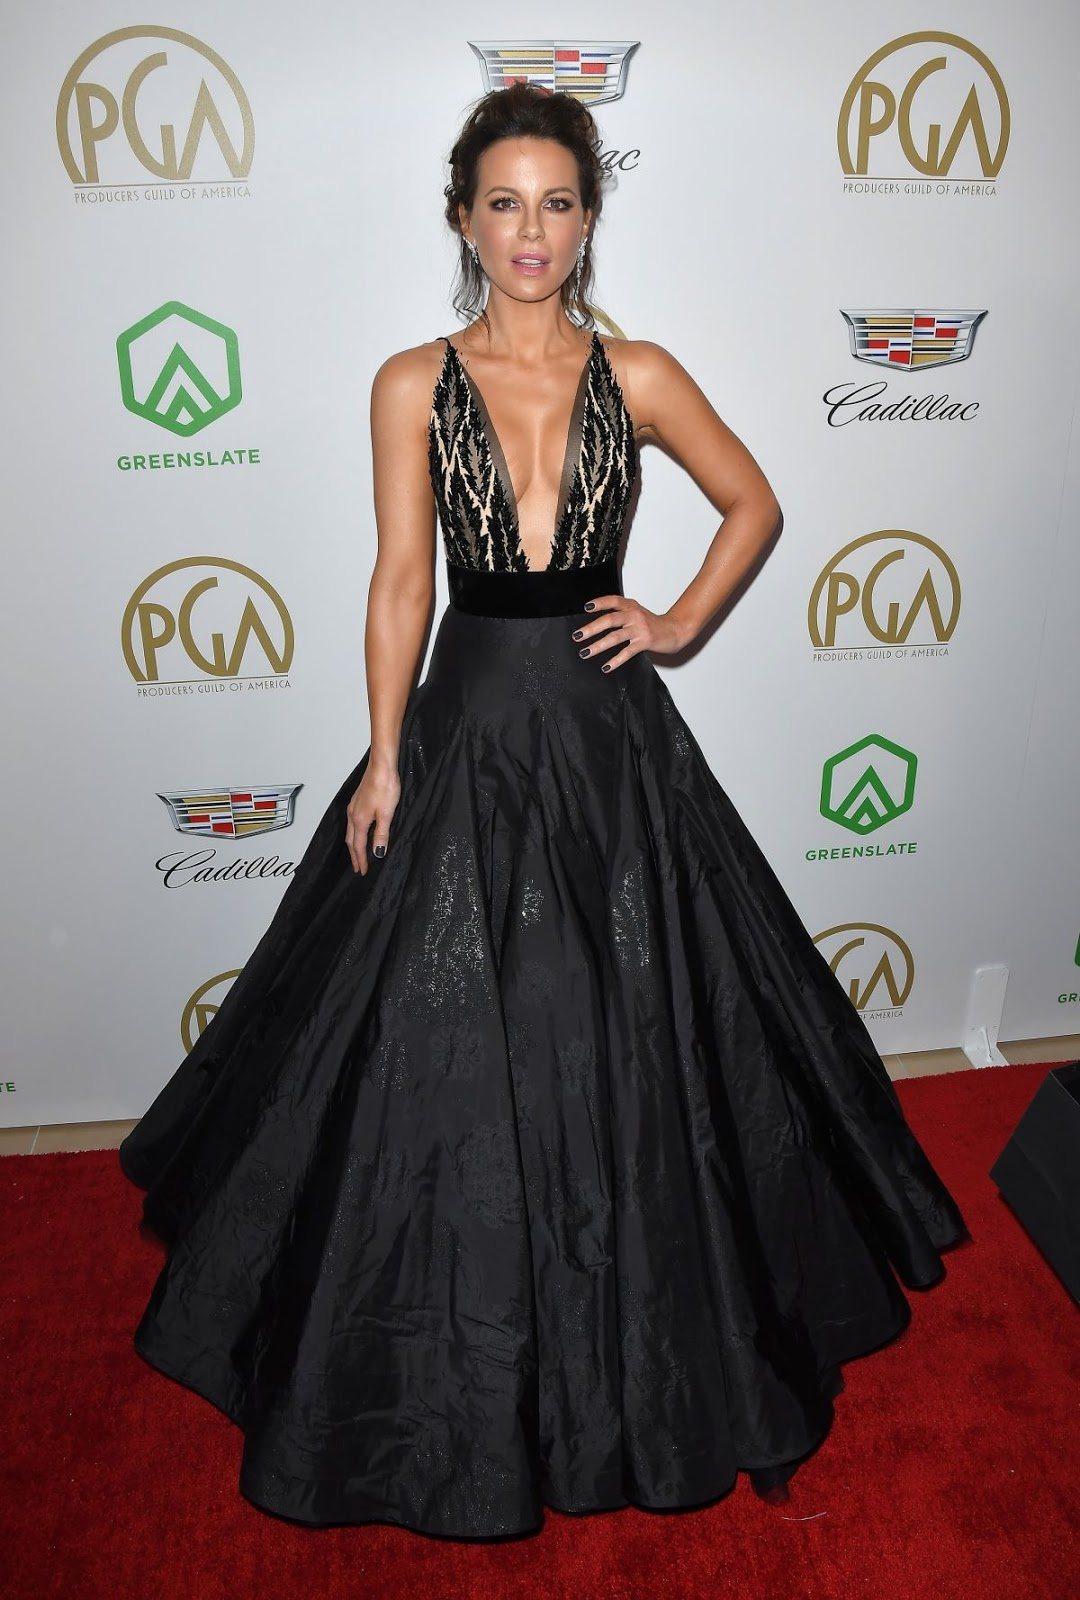 KATE BECKINSALE at 2019 Producers Guild Awards in Beverly Hills